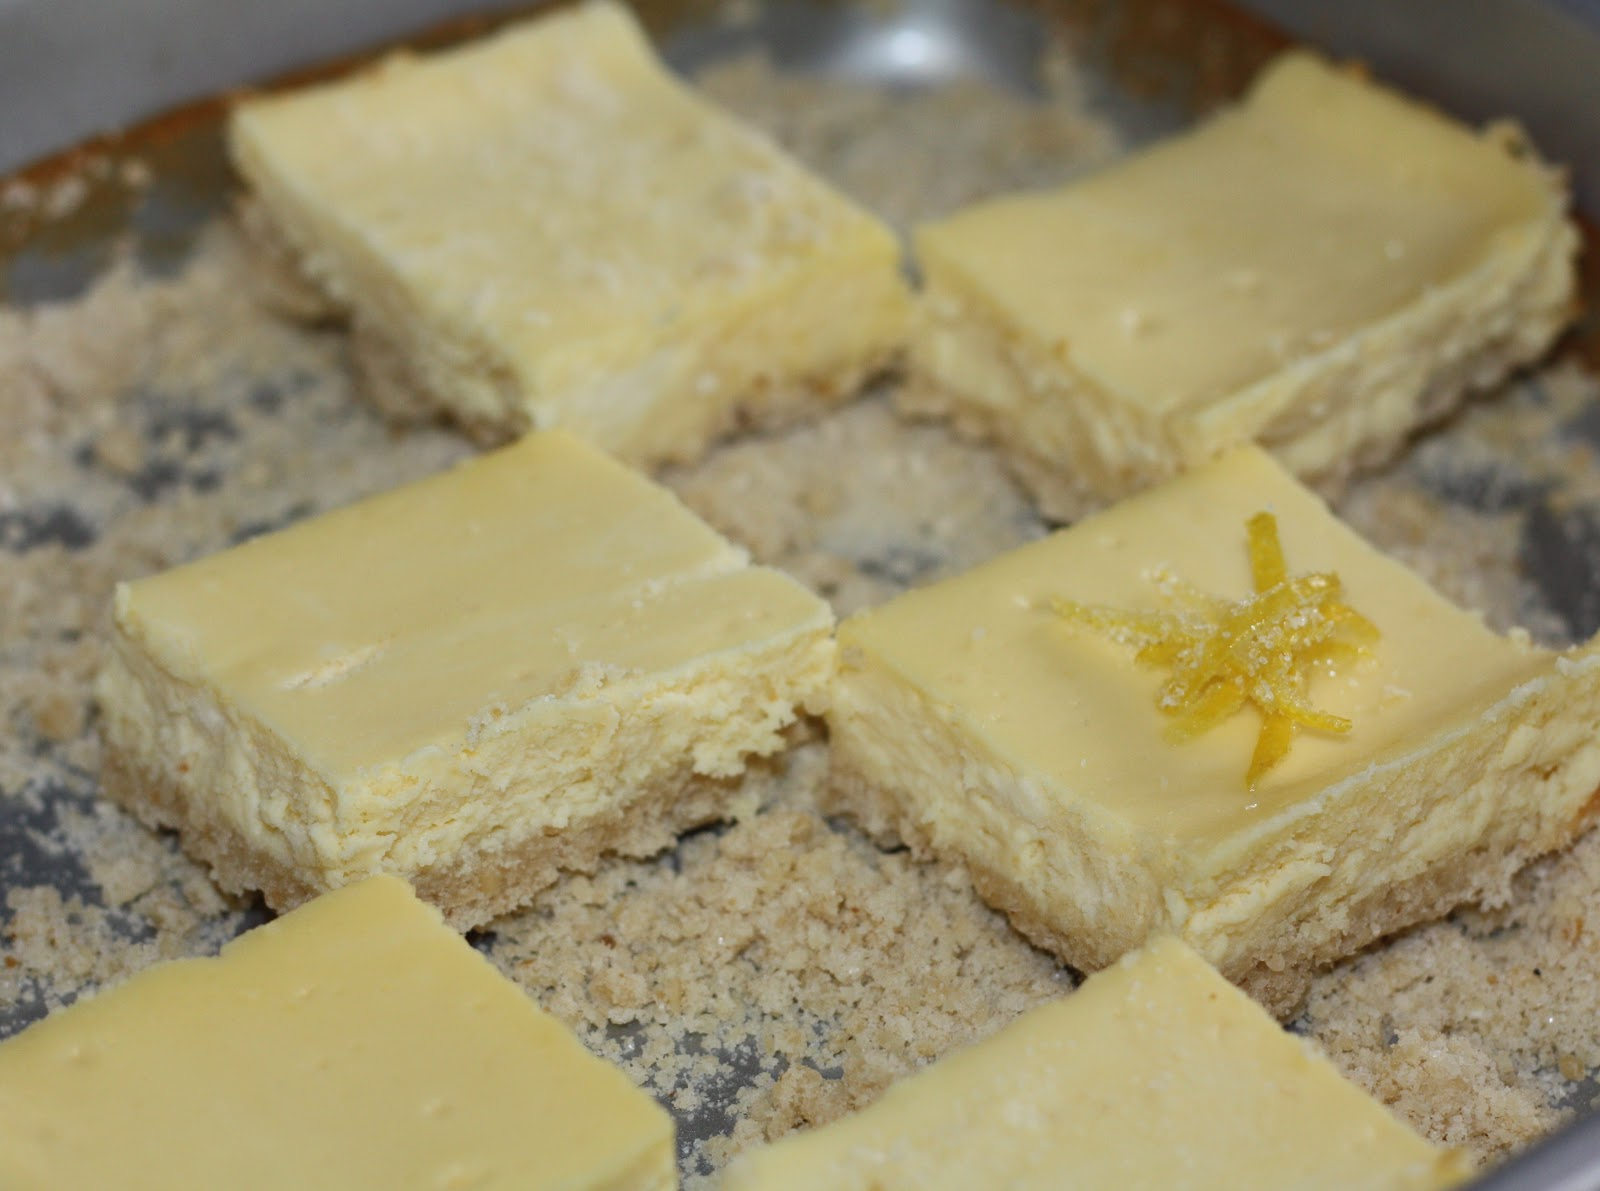 How would you rate these cheesecake squares for Passover originality?